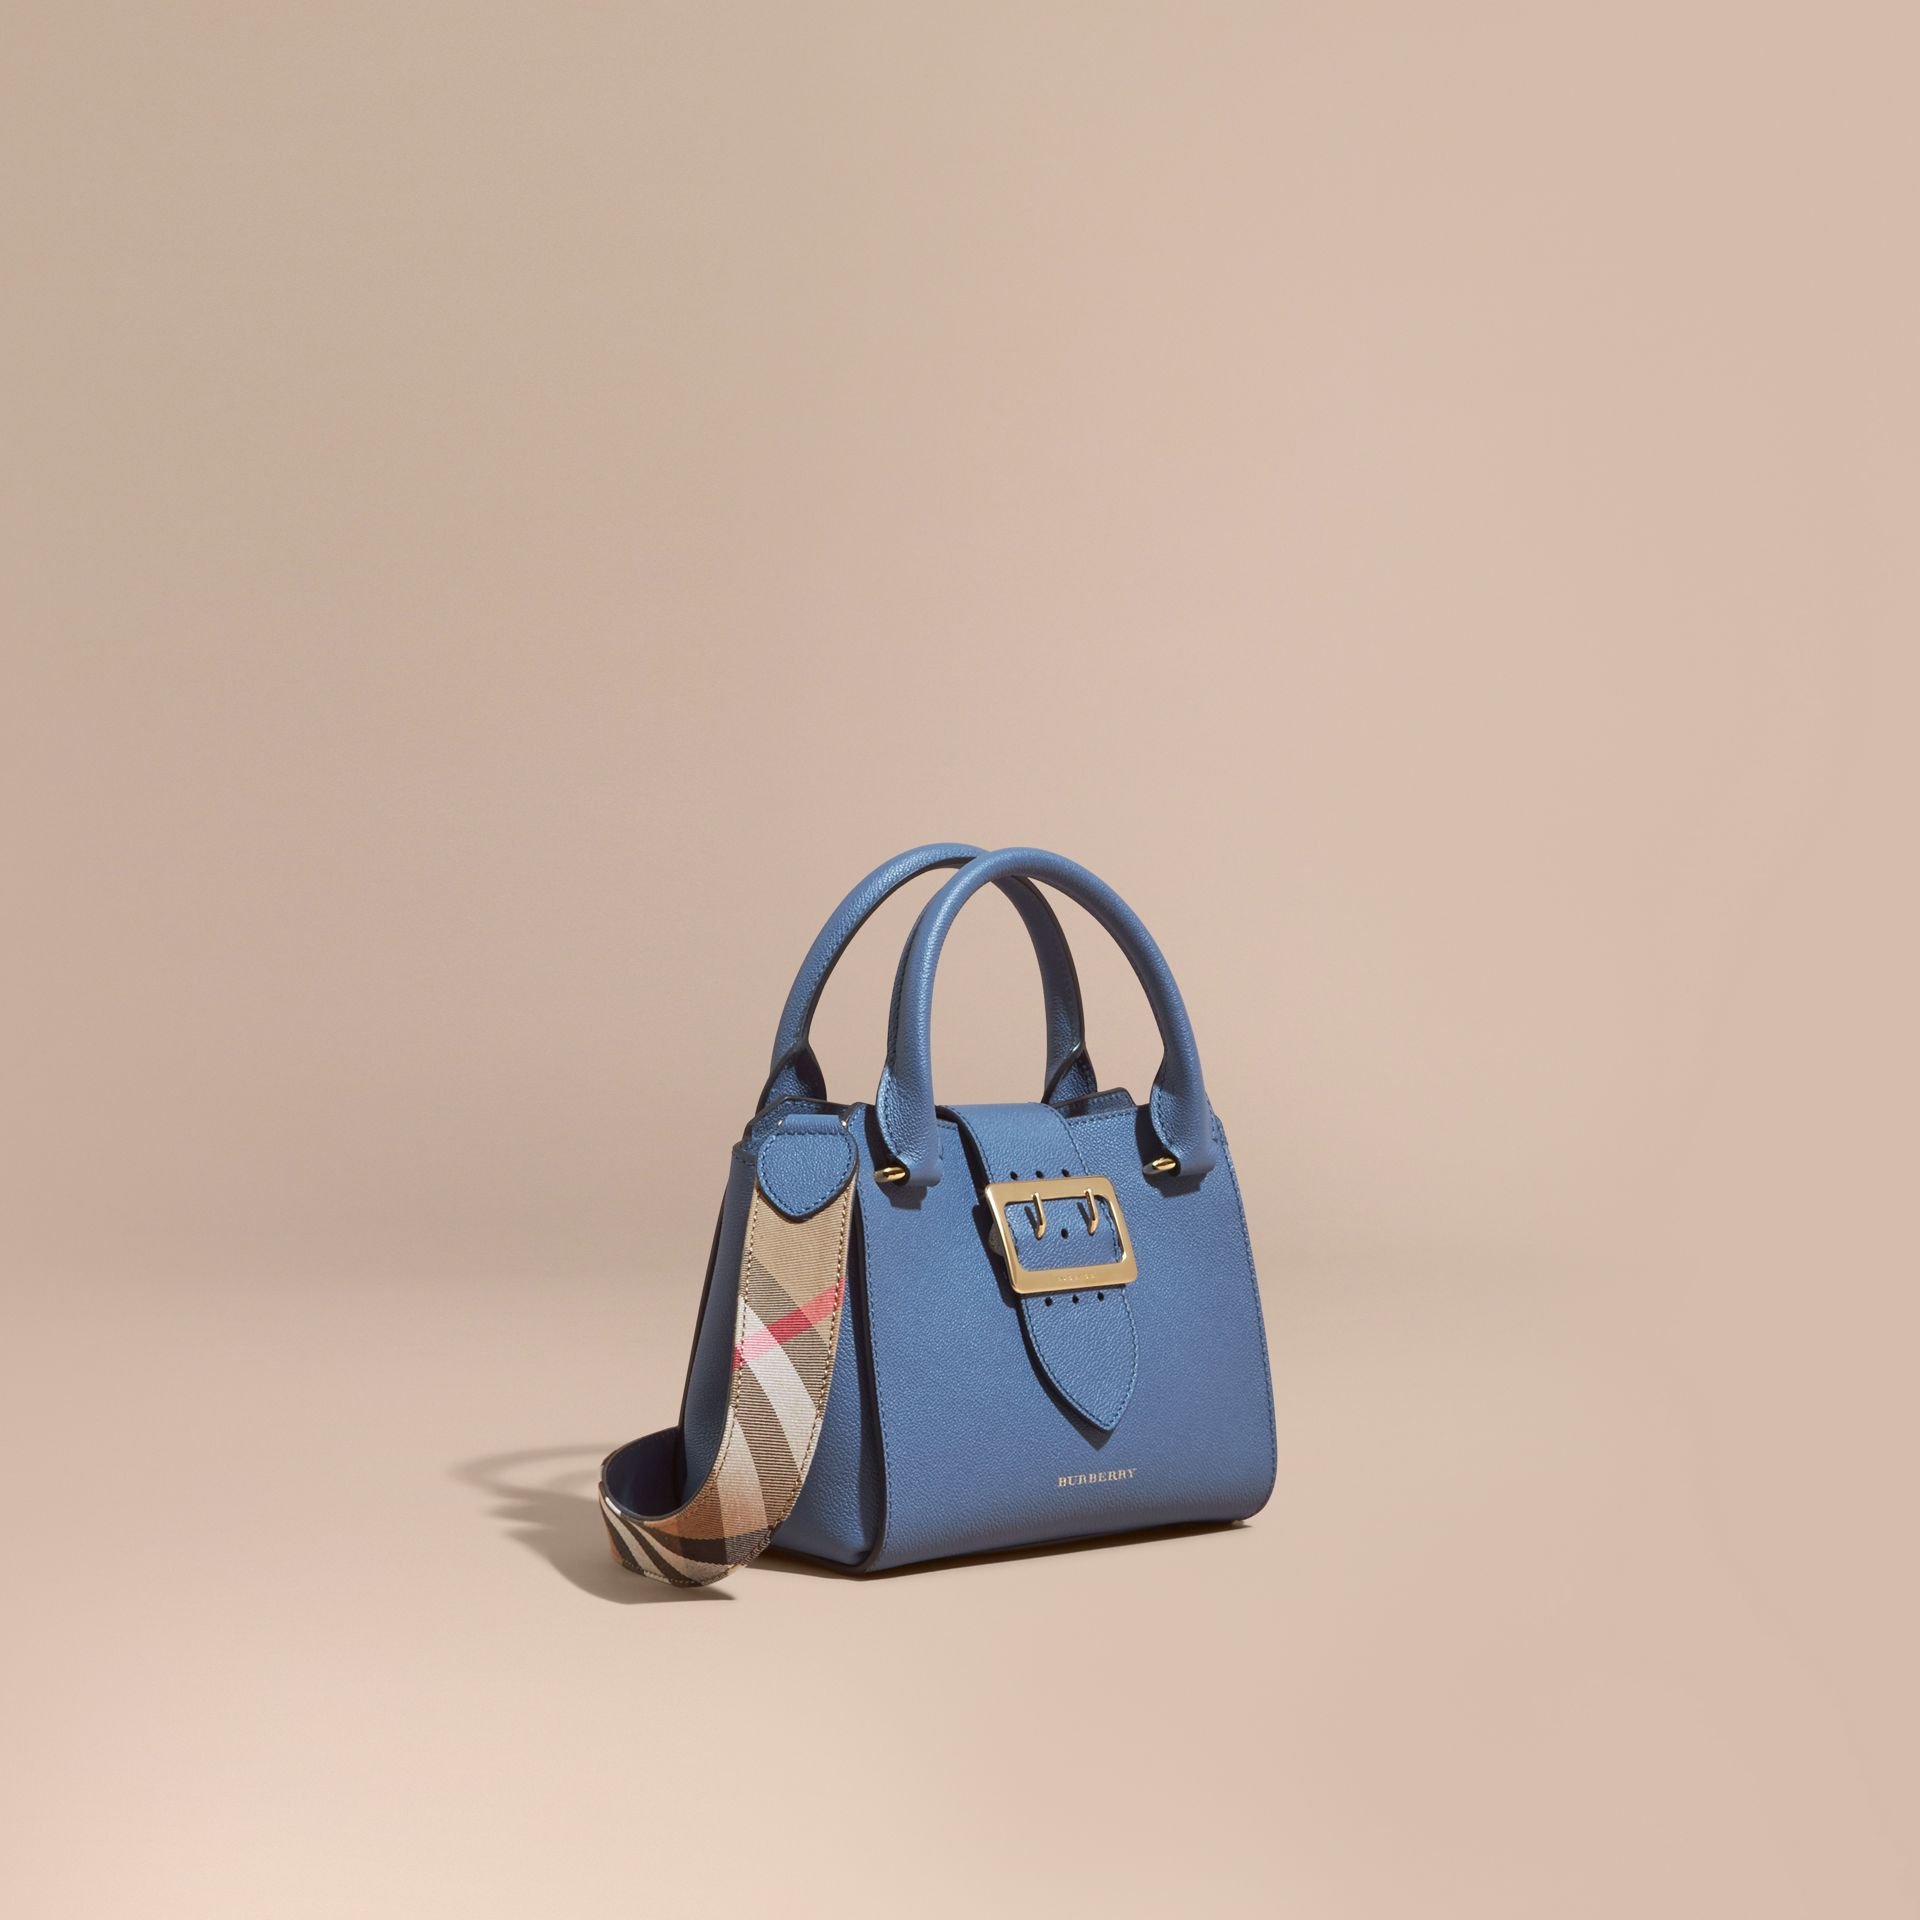 The Small Buckle Tote in Grainy Leather in Steel Blue - gallery image 1